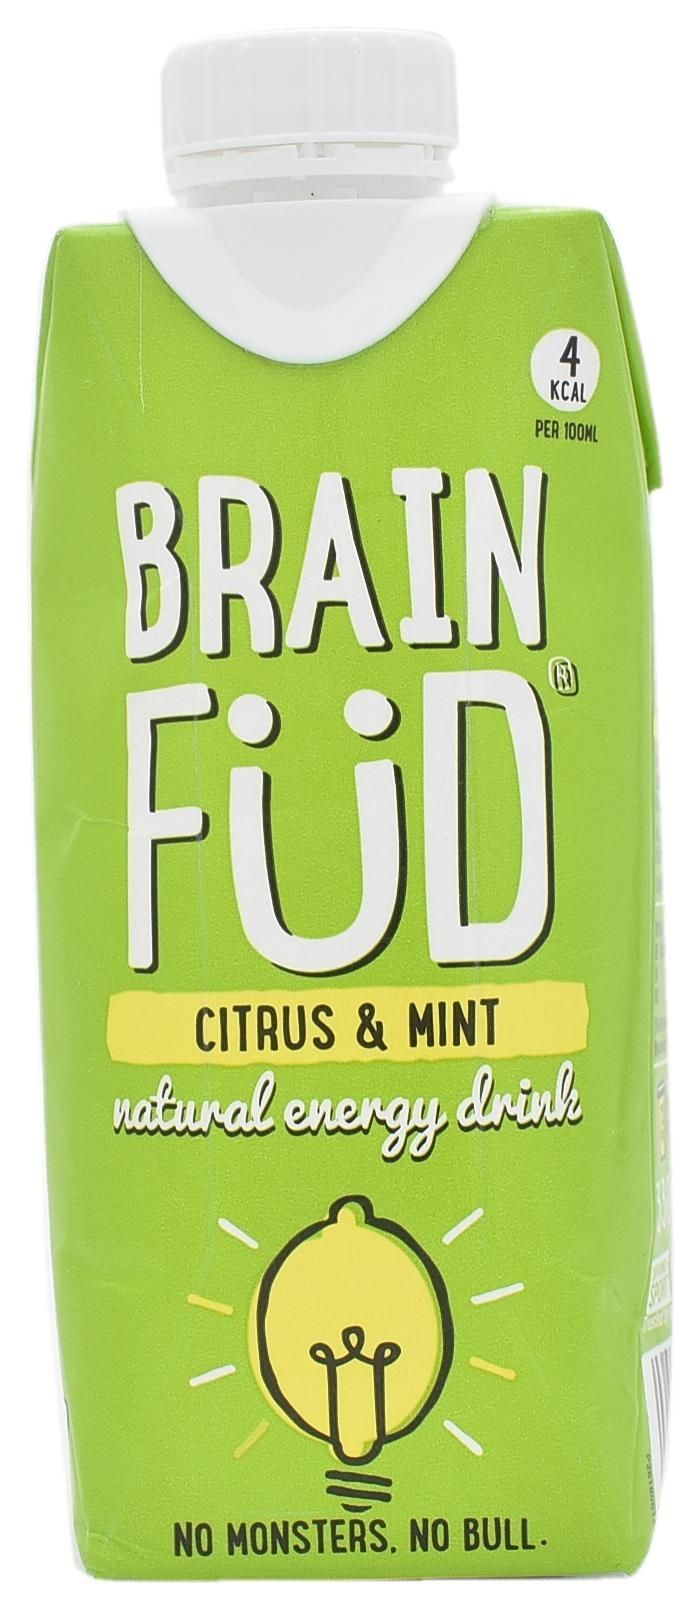 Brain Fud Citrus & Mint Natural Energy Drink